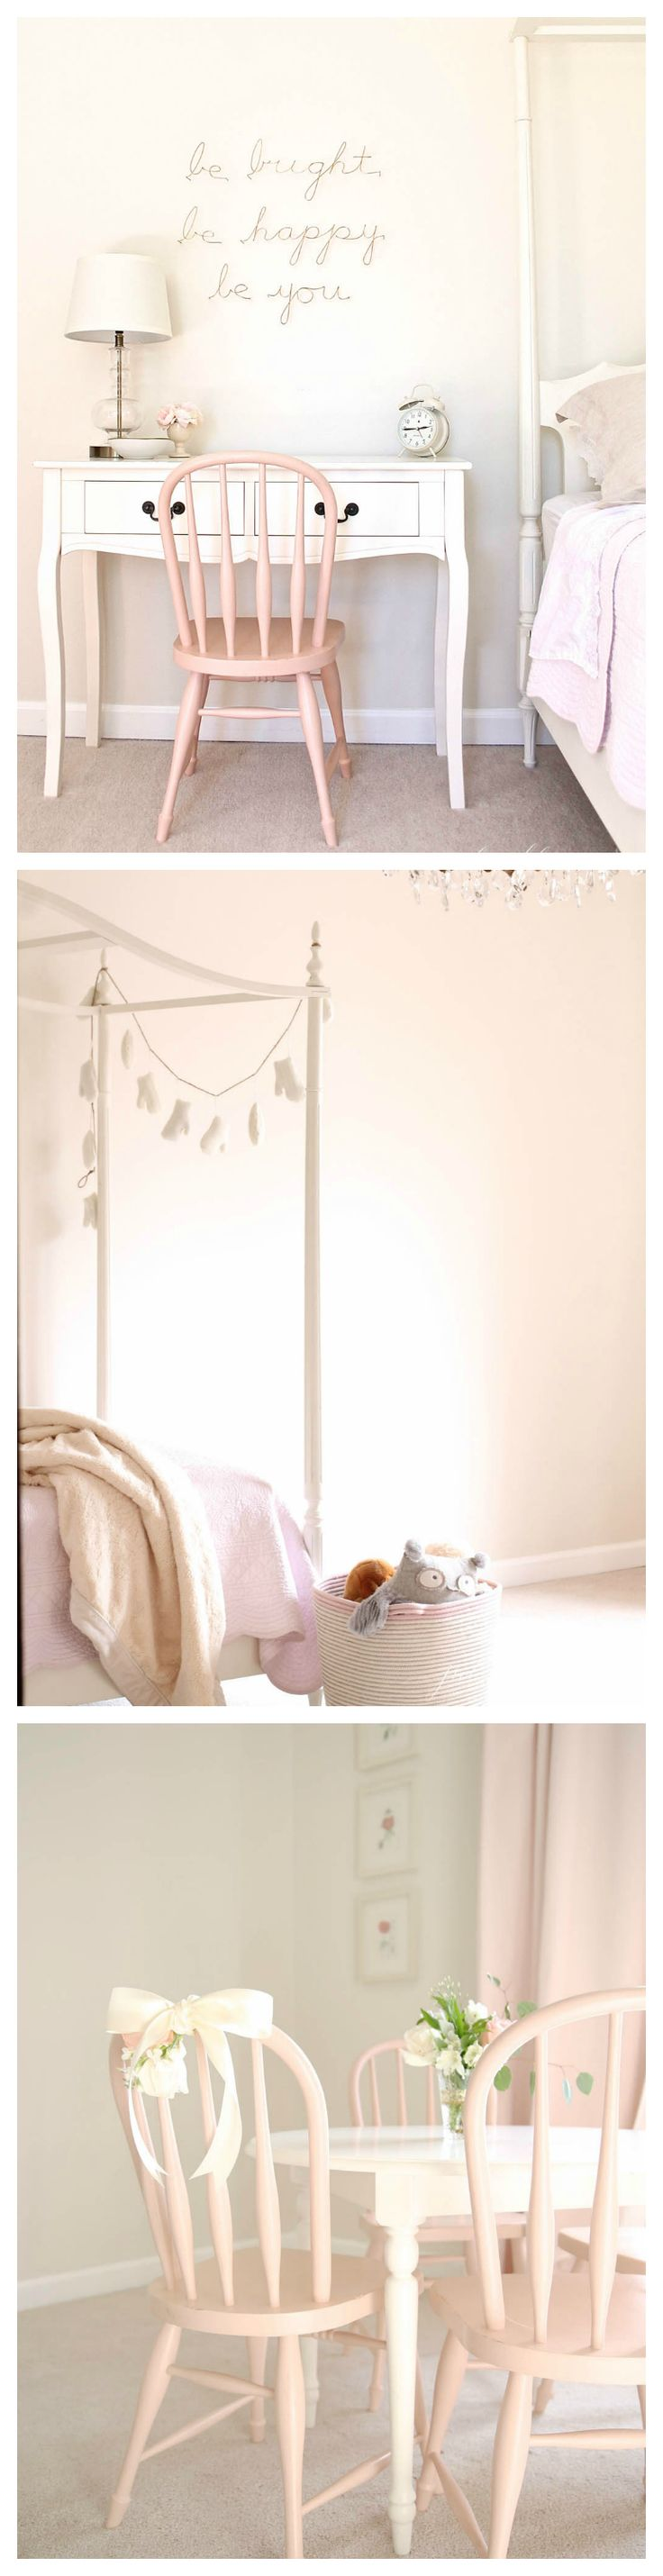 Some snaps of Adalyn's bedroom progress! Find motivation and tips for decorating your little girls room.